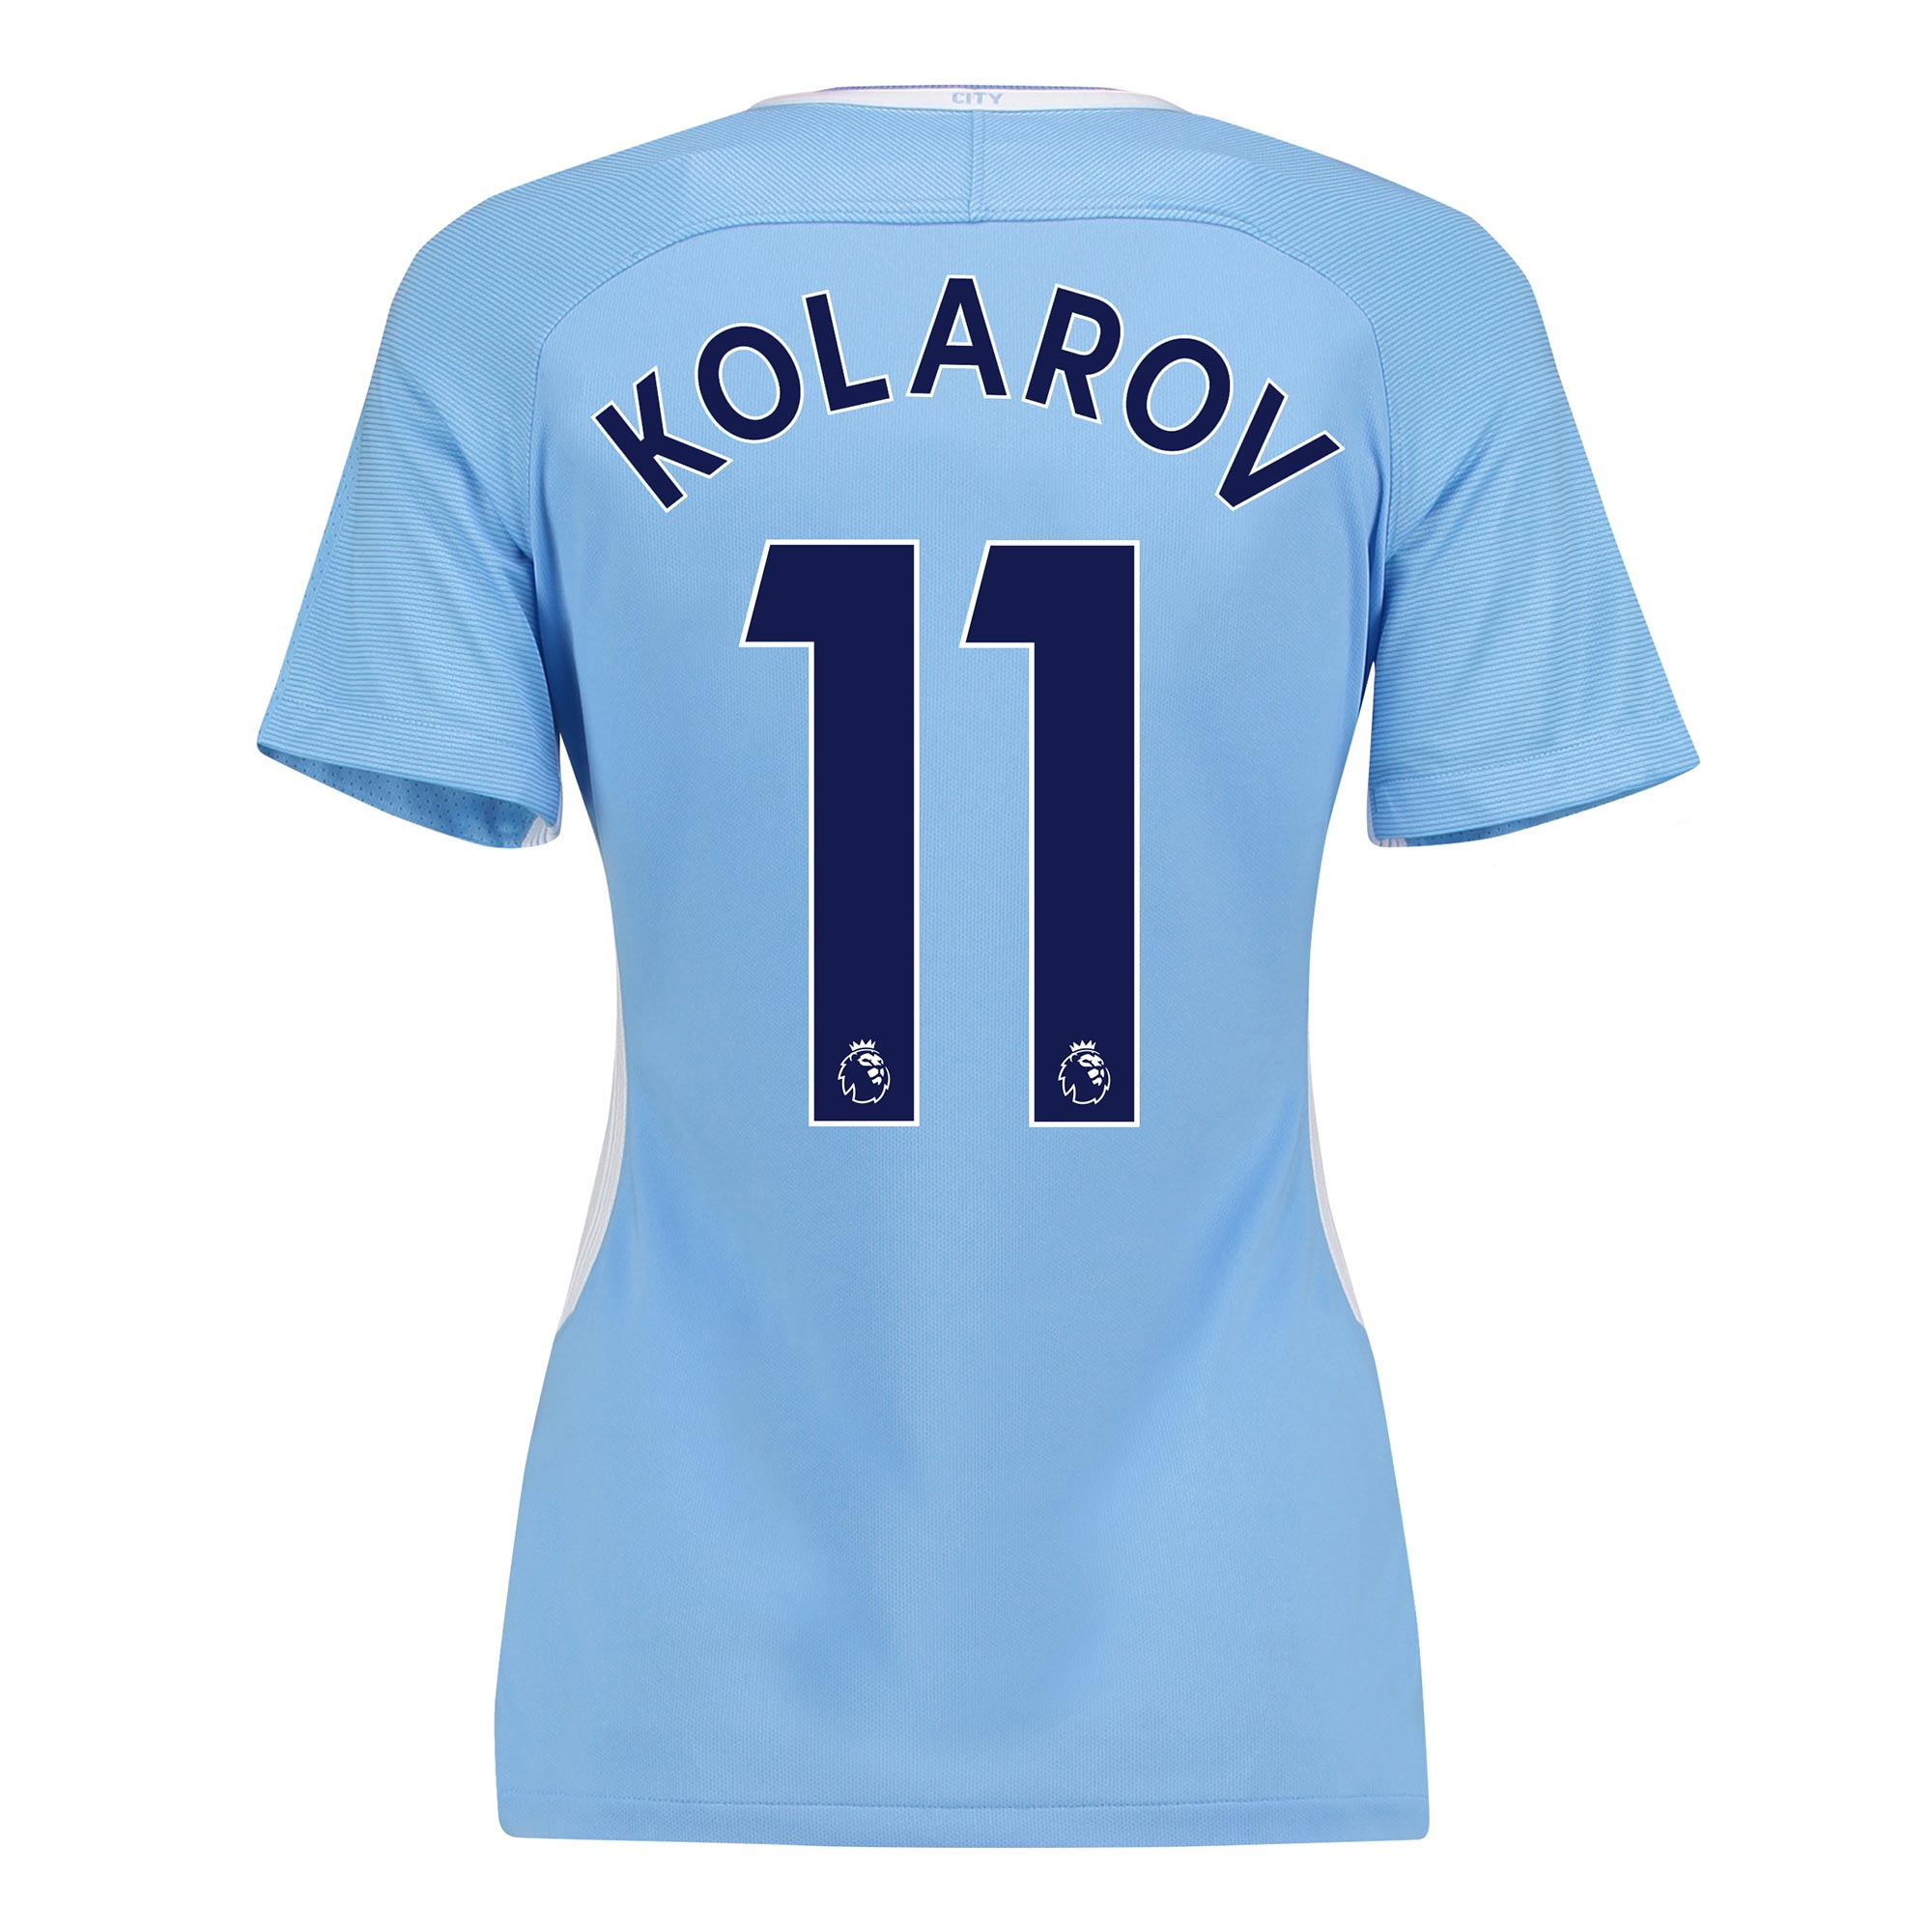 Manchester City Home Stadium Shirt 2017-18 - Womens with Kolarov 11 pr